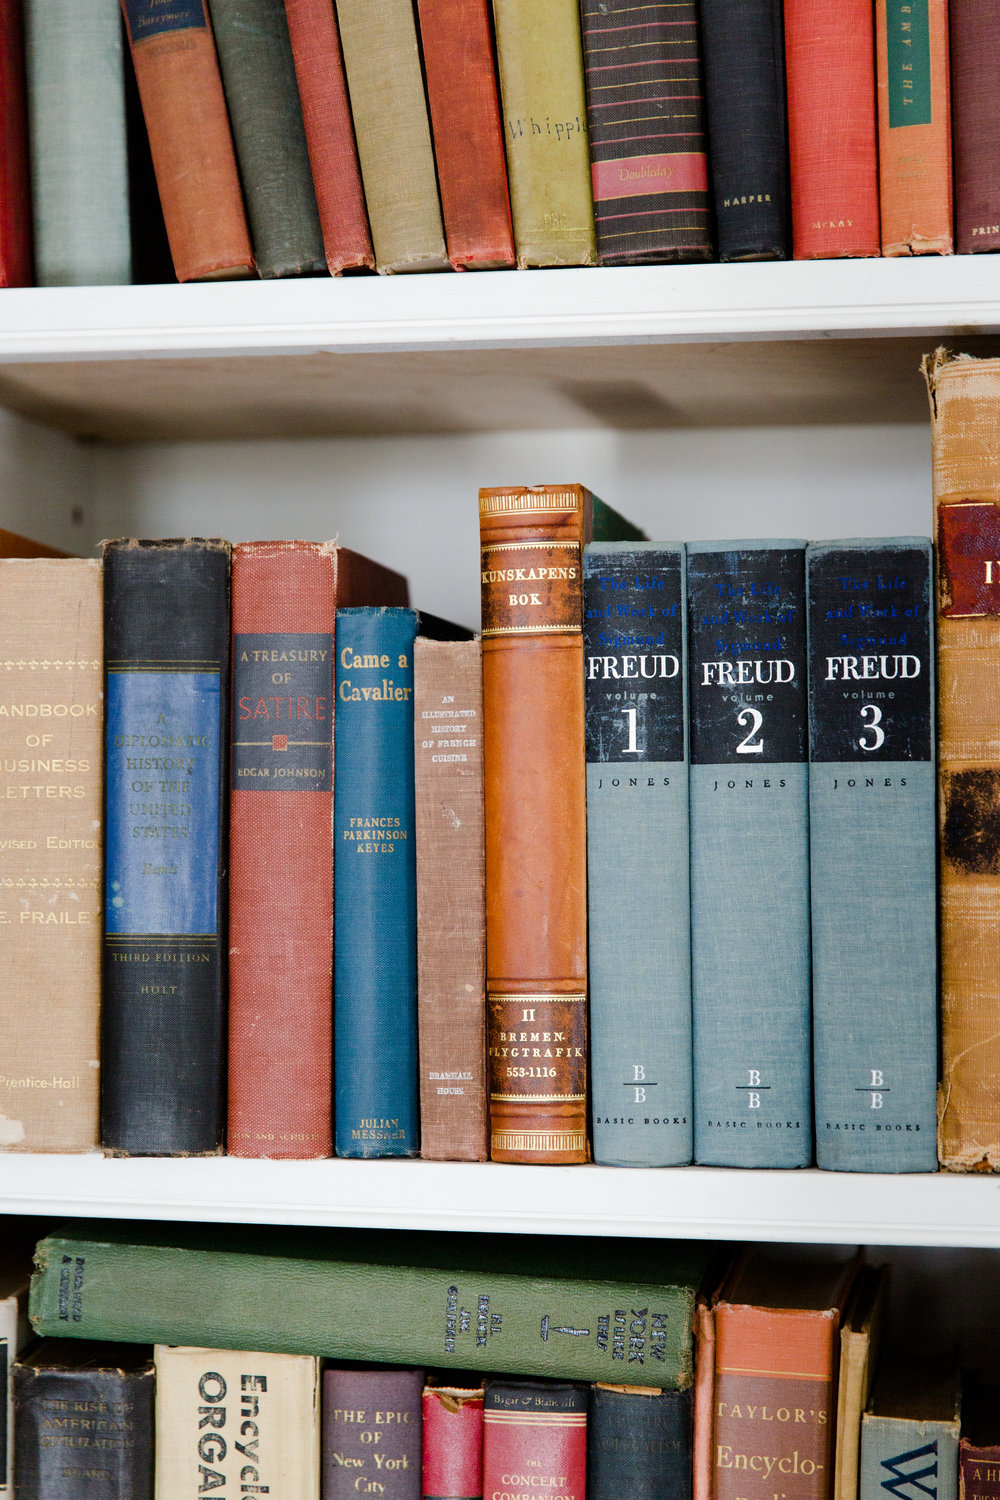 The Merchant House book collection